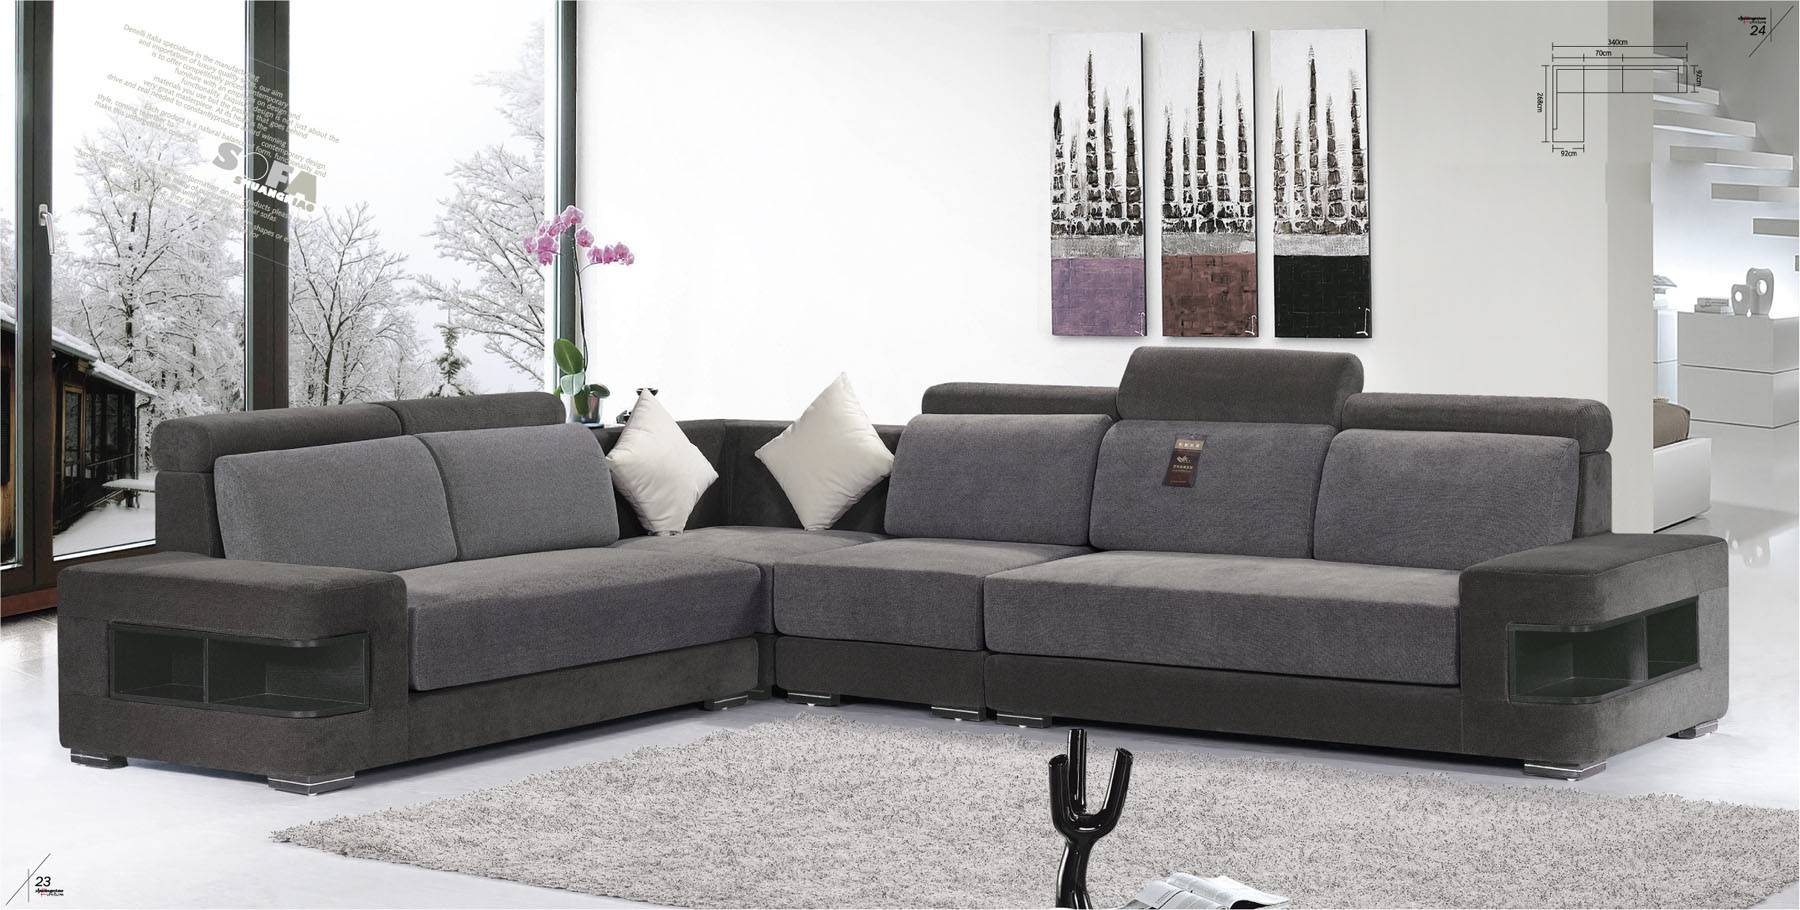 Furniture: L Shaped Sofa | Pit Sectional | Sectional Pit Sofa for Pit Sofas (Image 9 of 30)